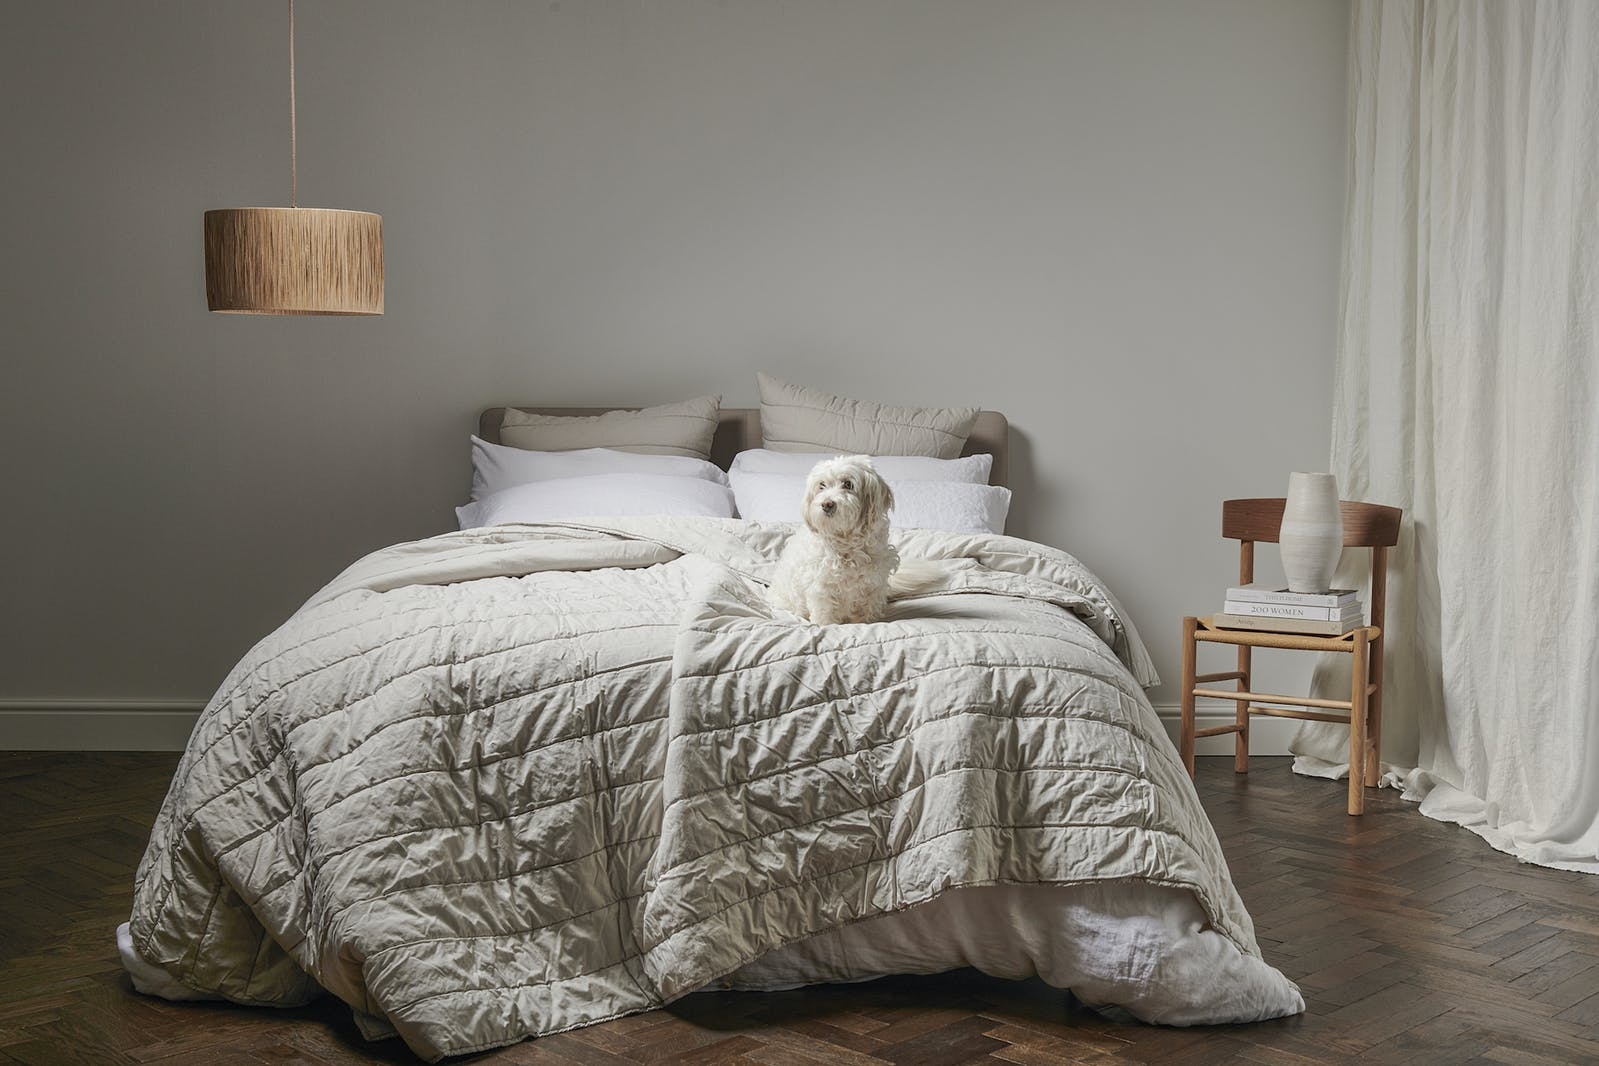 Bedfolk layered bedding in a beige and calming room setting